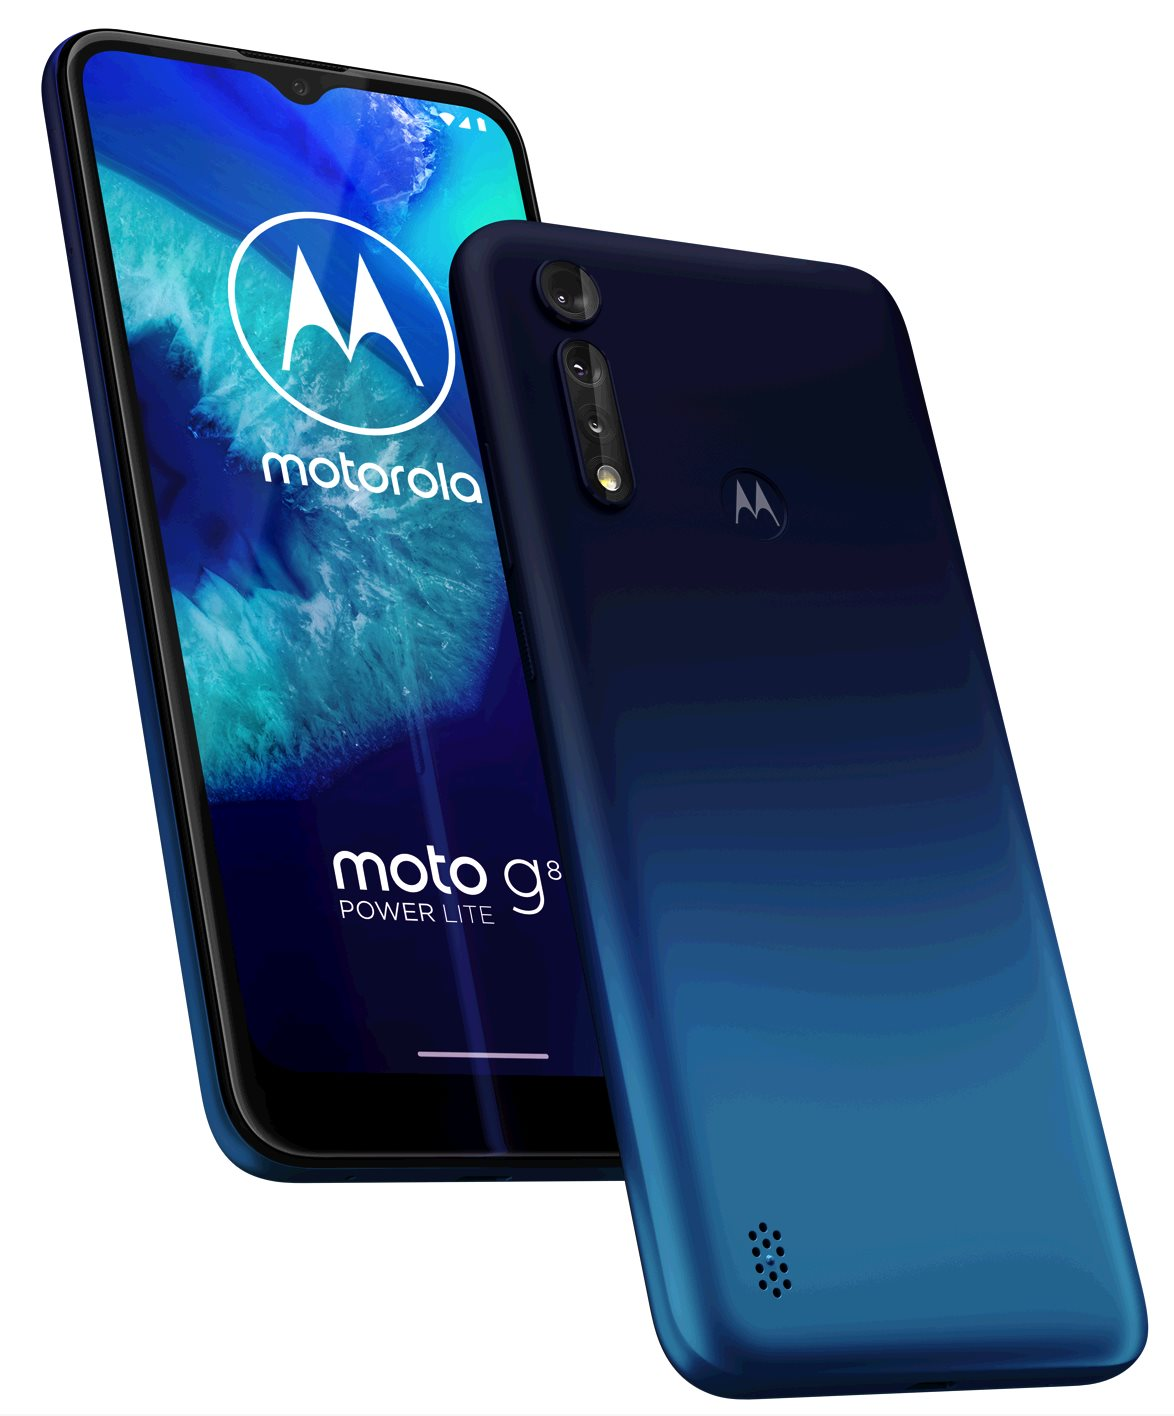 Motorola Moto G8 Power Lite 4+64GB DS gsm tel. Royal Blue